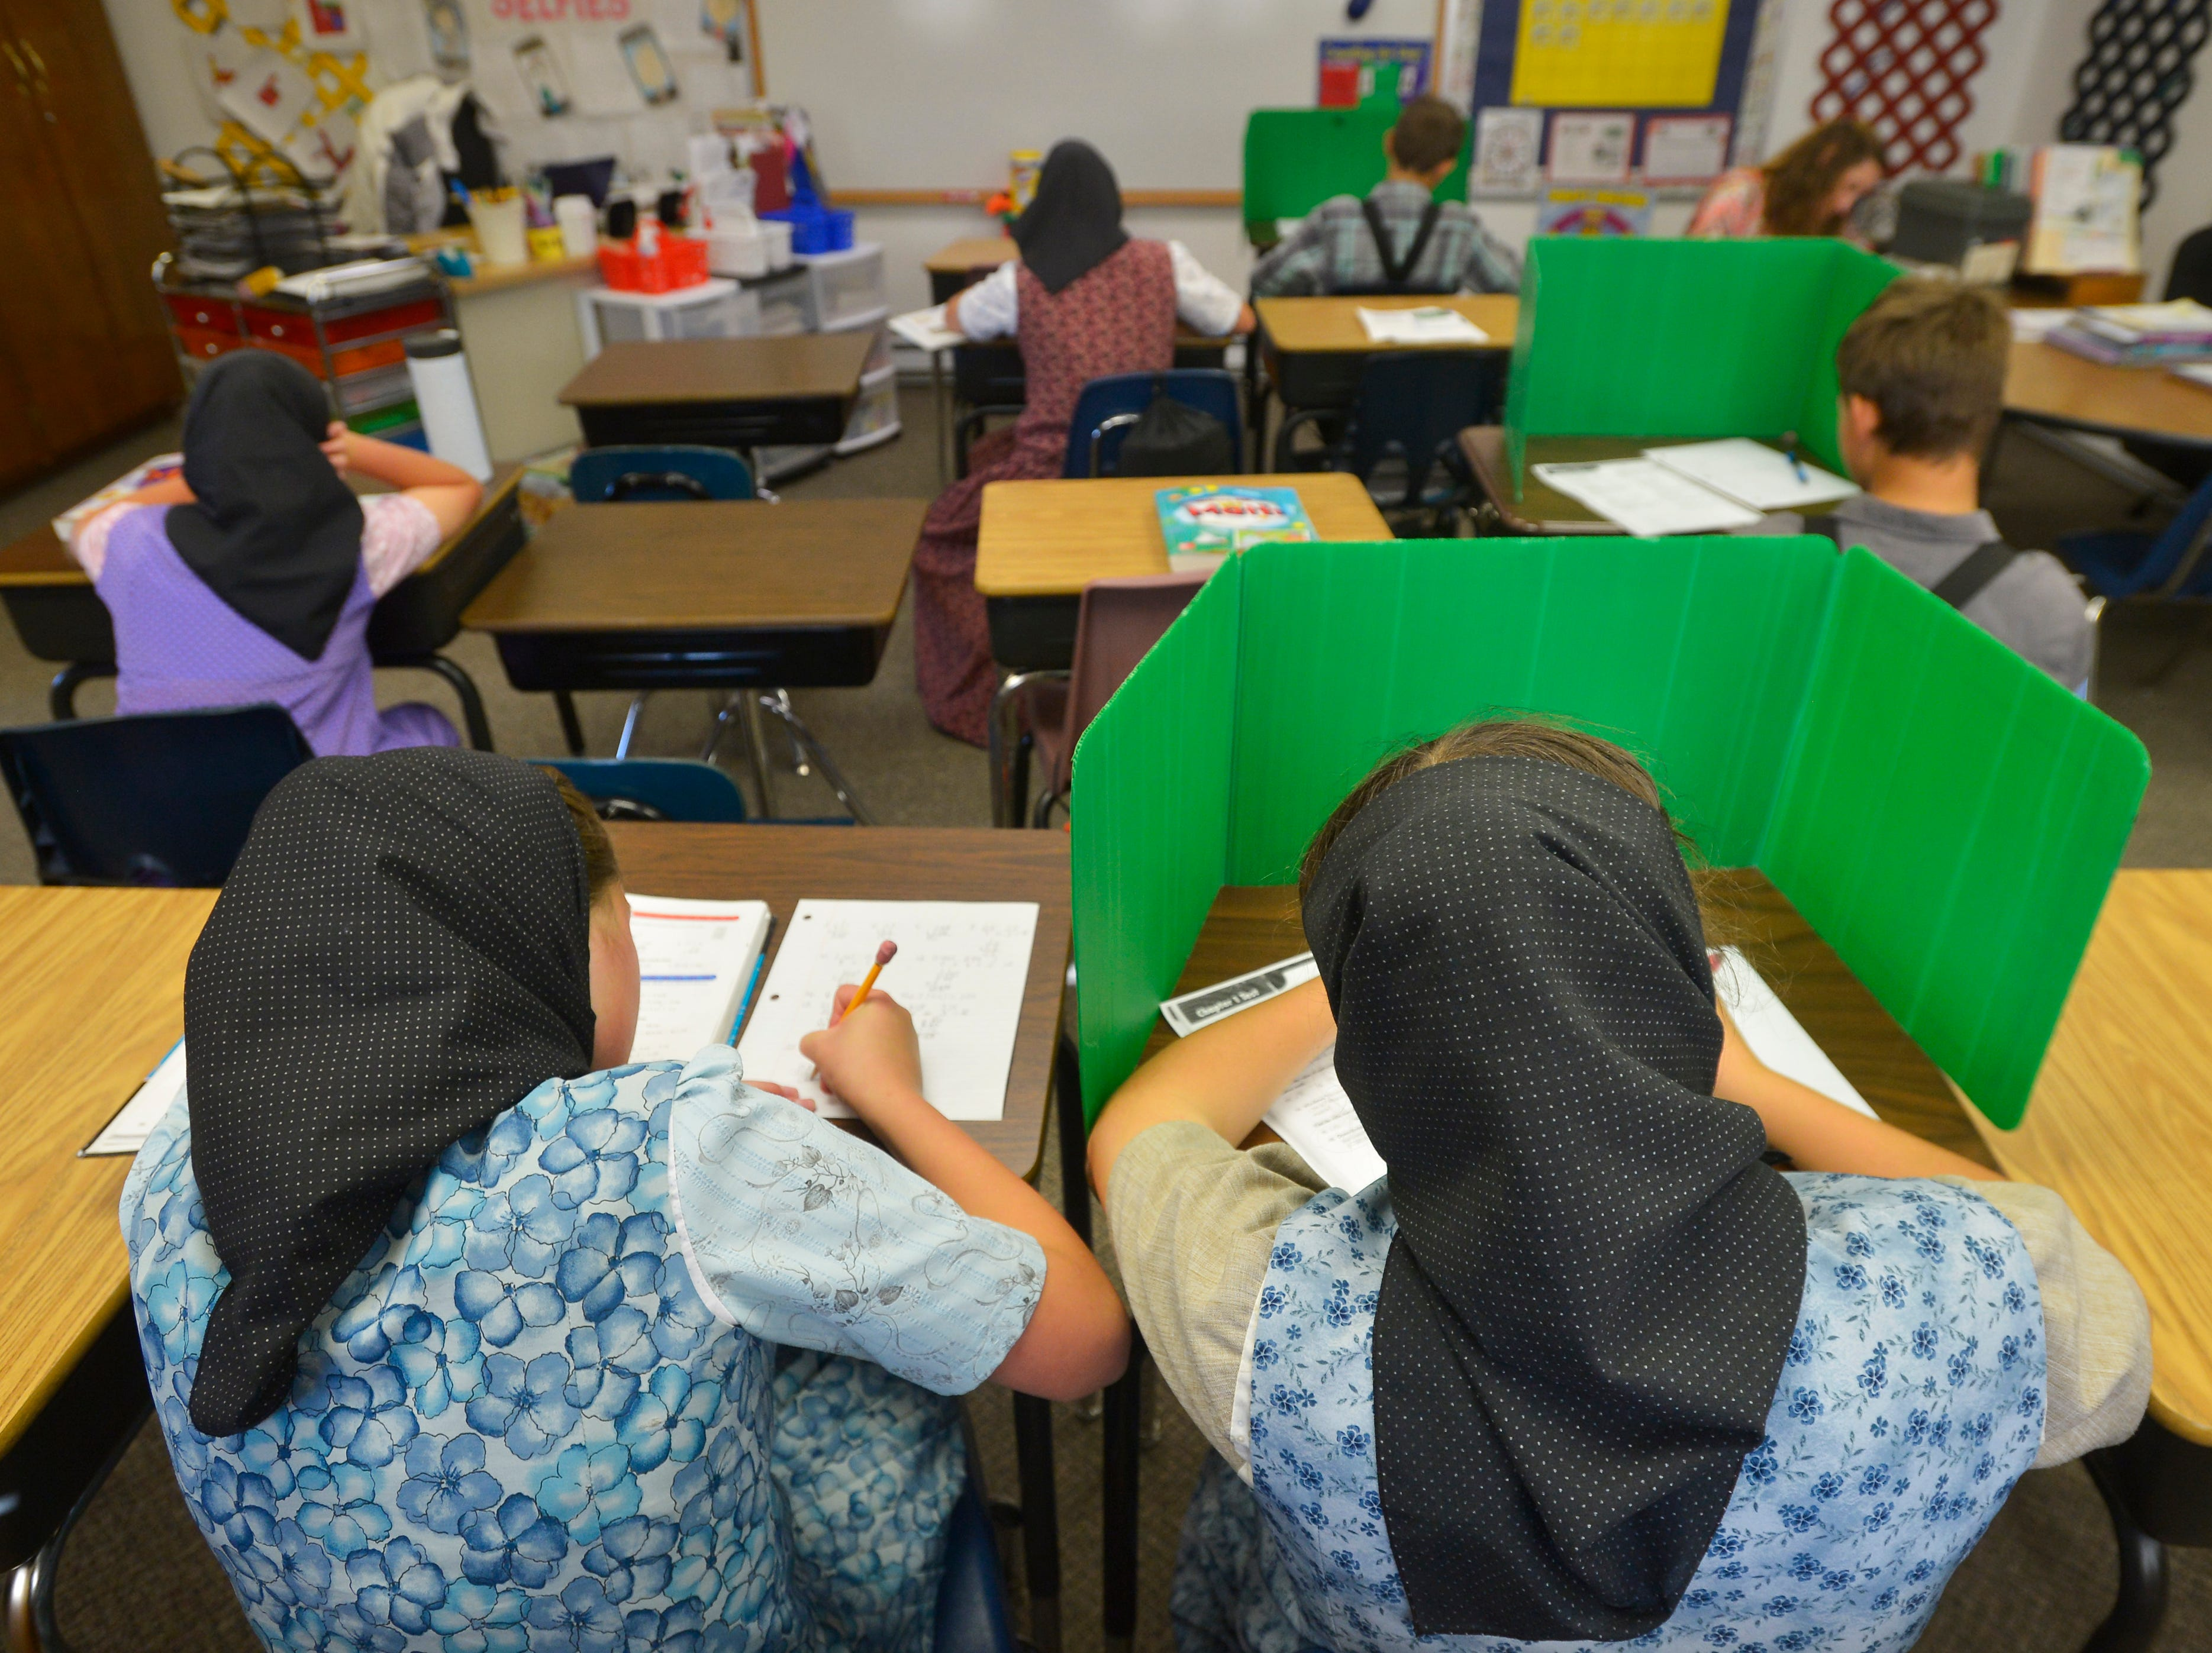 9:22 am:  Traci Manseau's students work quietly at their desks on Monday, September 17, 2018.  Manseau is a teaching veteran of 23 years and she has spent her entire career teaching in one room rural school houses.  She is currently teaching 15 students across seven different grade levels at the Deerfield Hutterite Colony in North Central Montana's Fergus County.